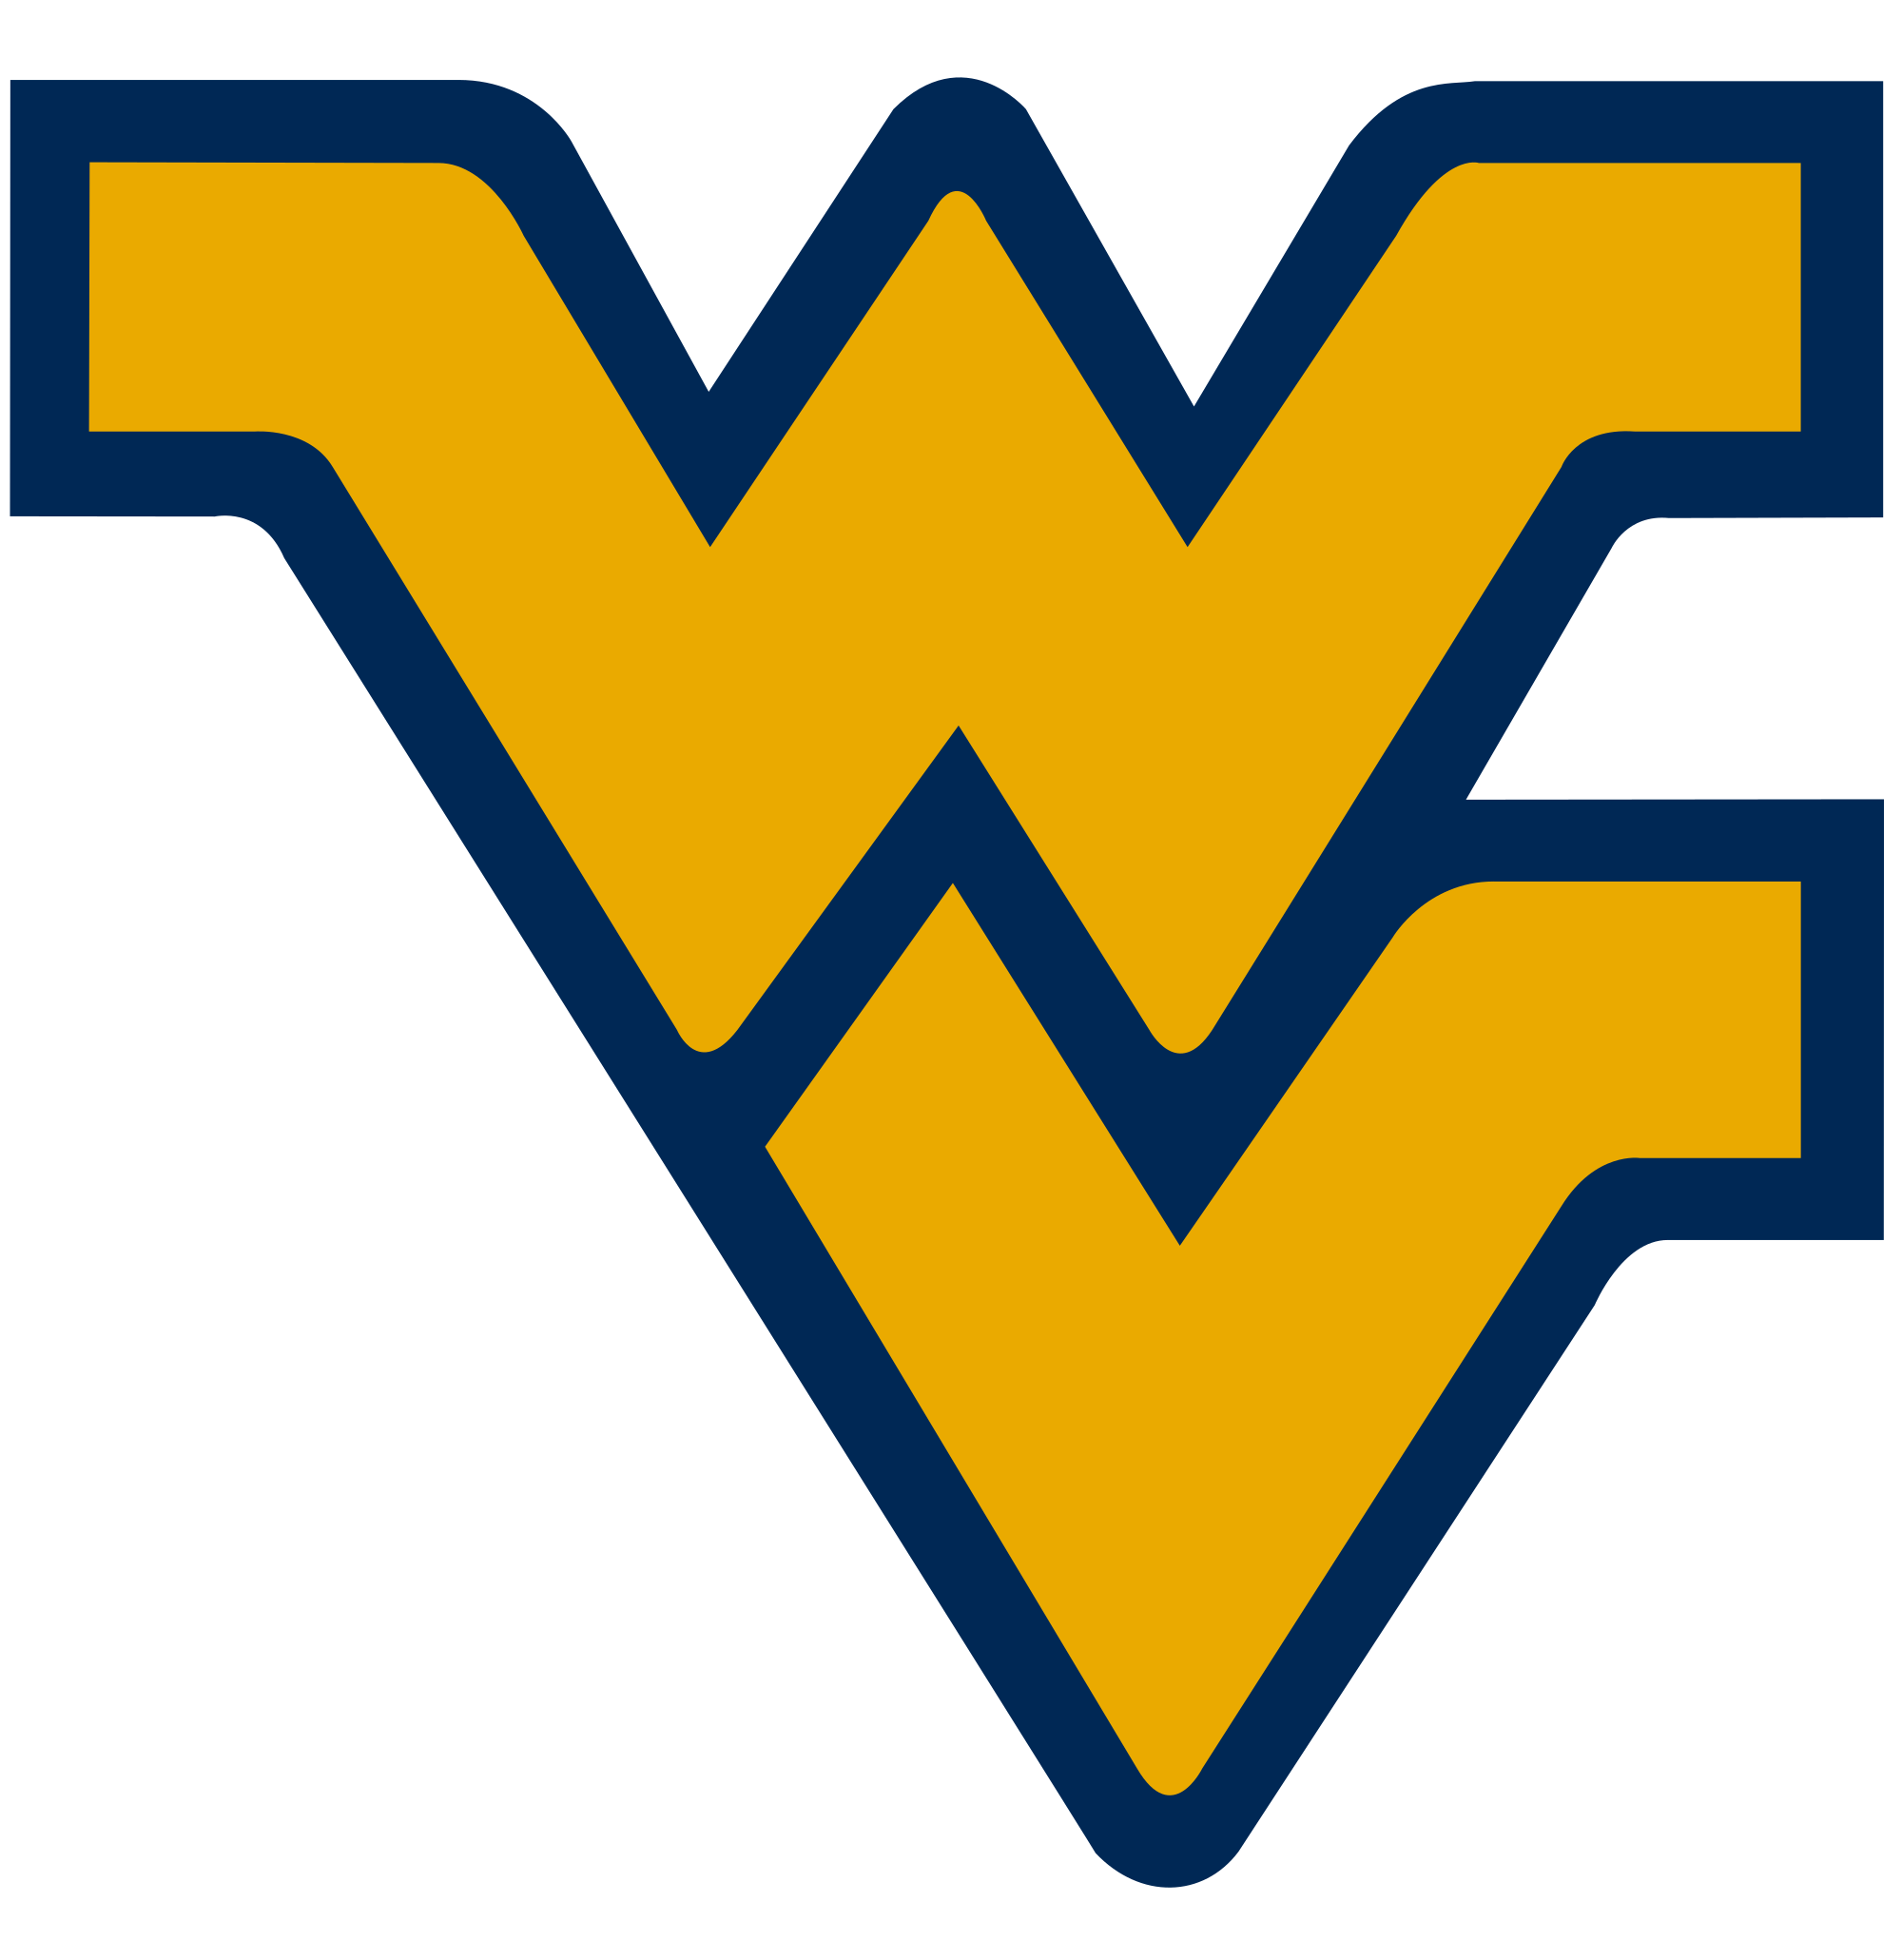 Wvu football clipart free stock File:West Virginia Mountaineers logo.svg - Wikimedia Commons free stock